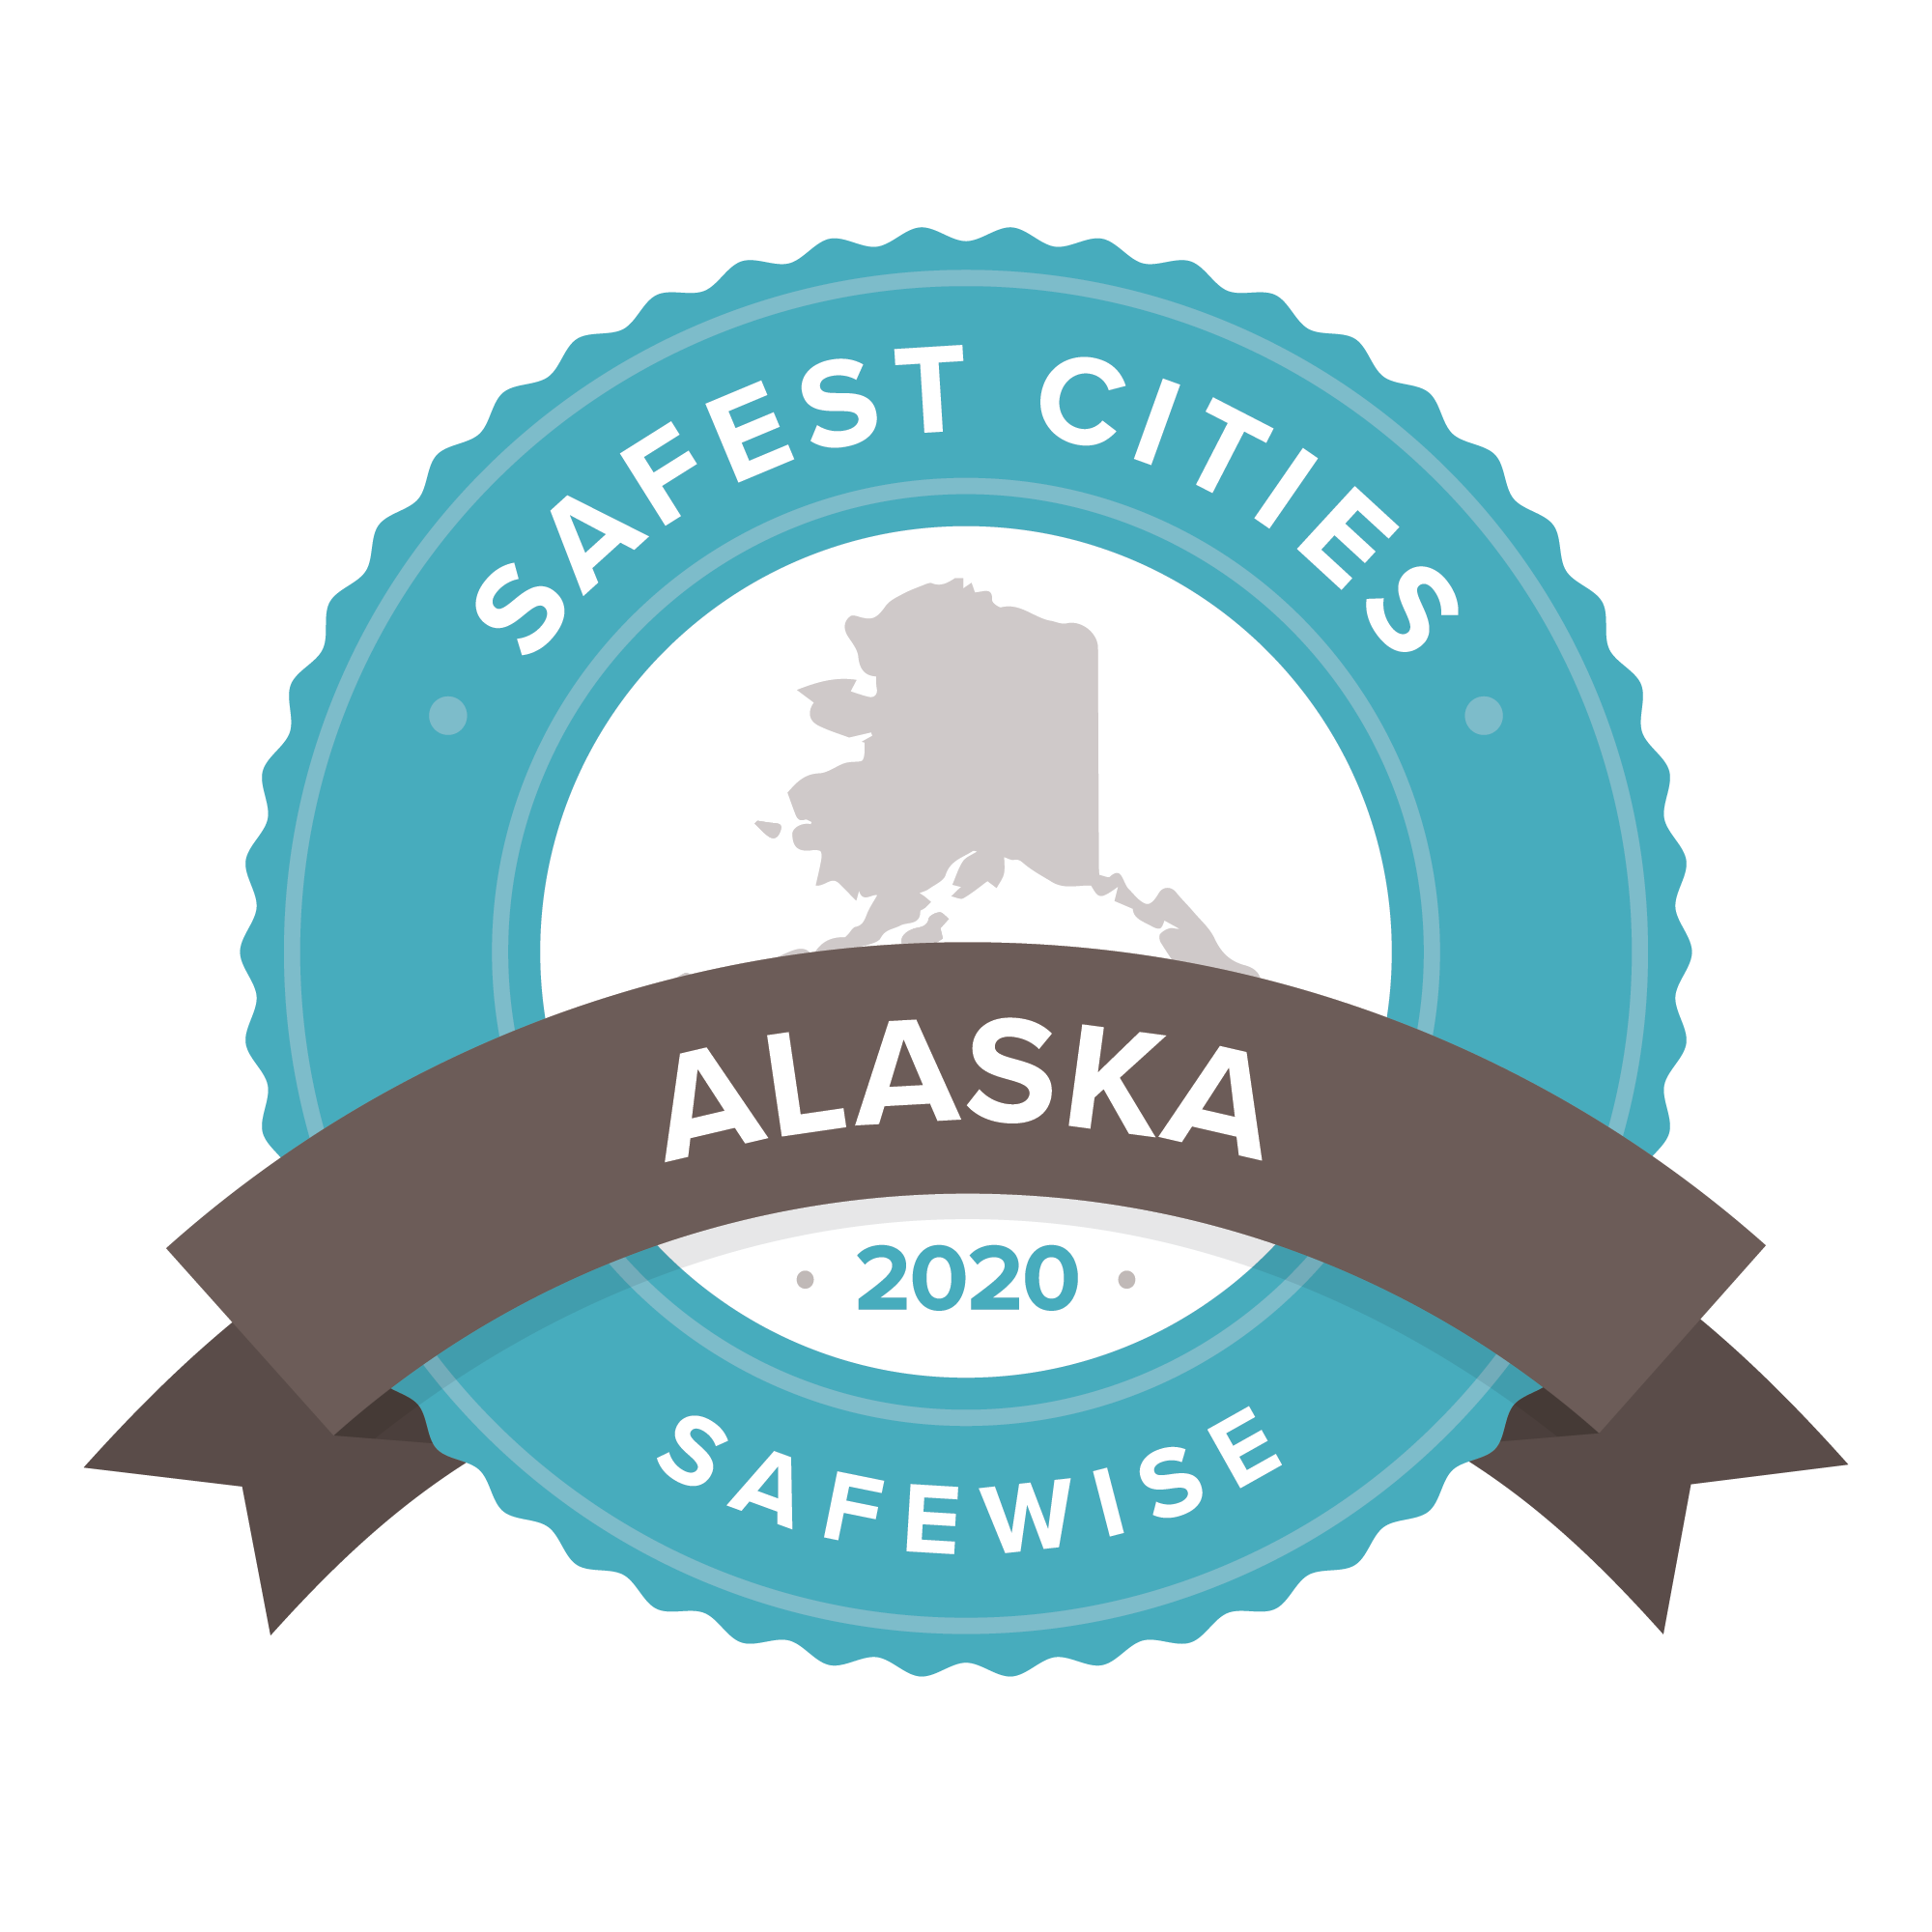 Alaska safest cities badge